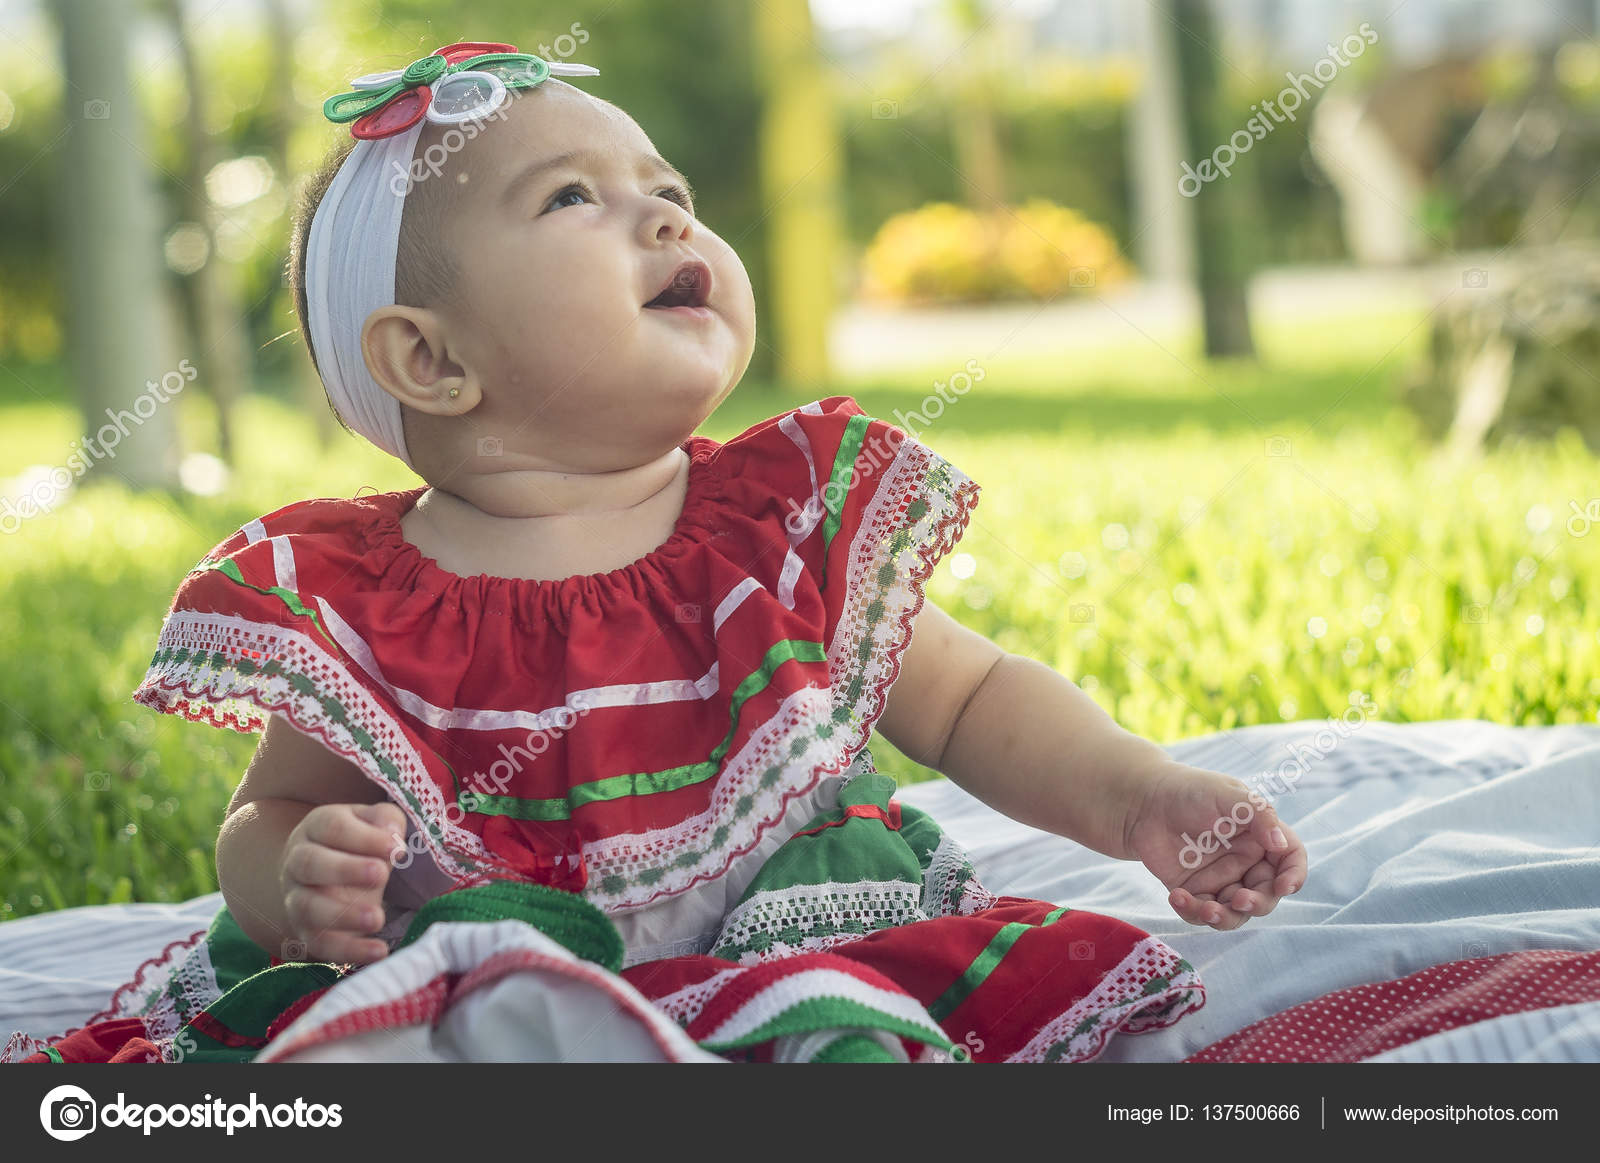 very beautiful white baby, sitting in the grass, wearing mexican